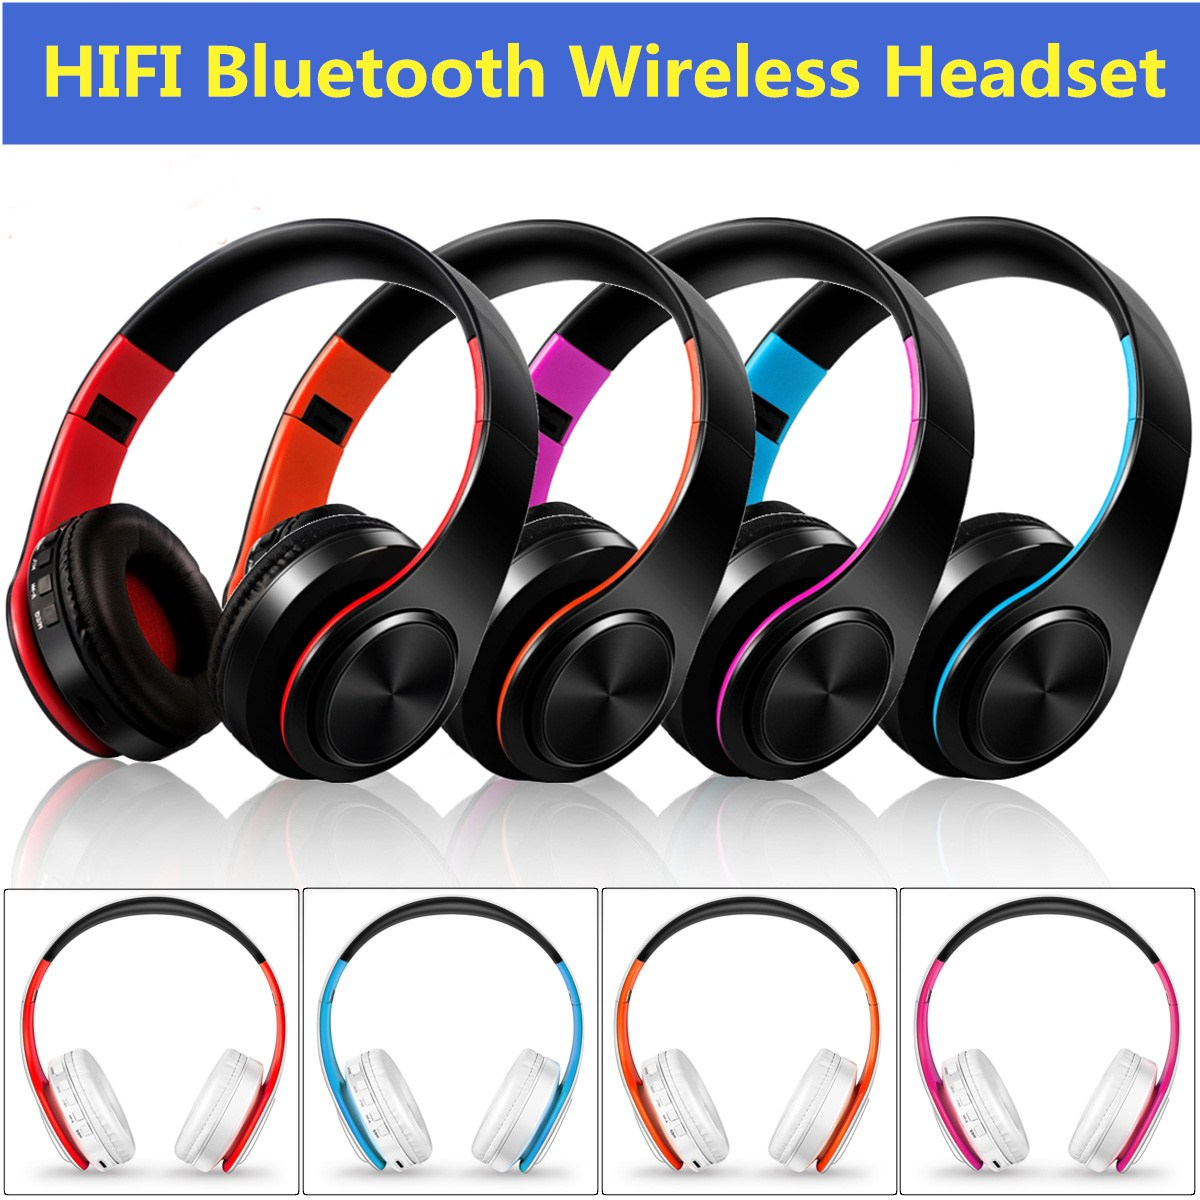 Foldable Noise Cancelling Wireless Hifi Stereo Bass Bluetooth 4.0 Sport Game Headphone Headset Over Ear Mic & FM TF card, AUX for PS4 PC Laptop Computer Cell Phones TV Soft Earmuff